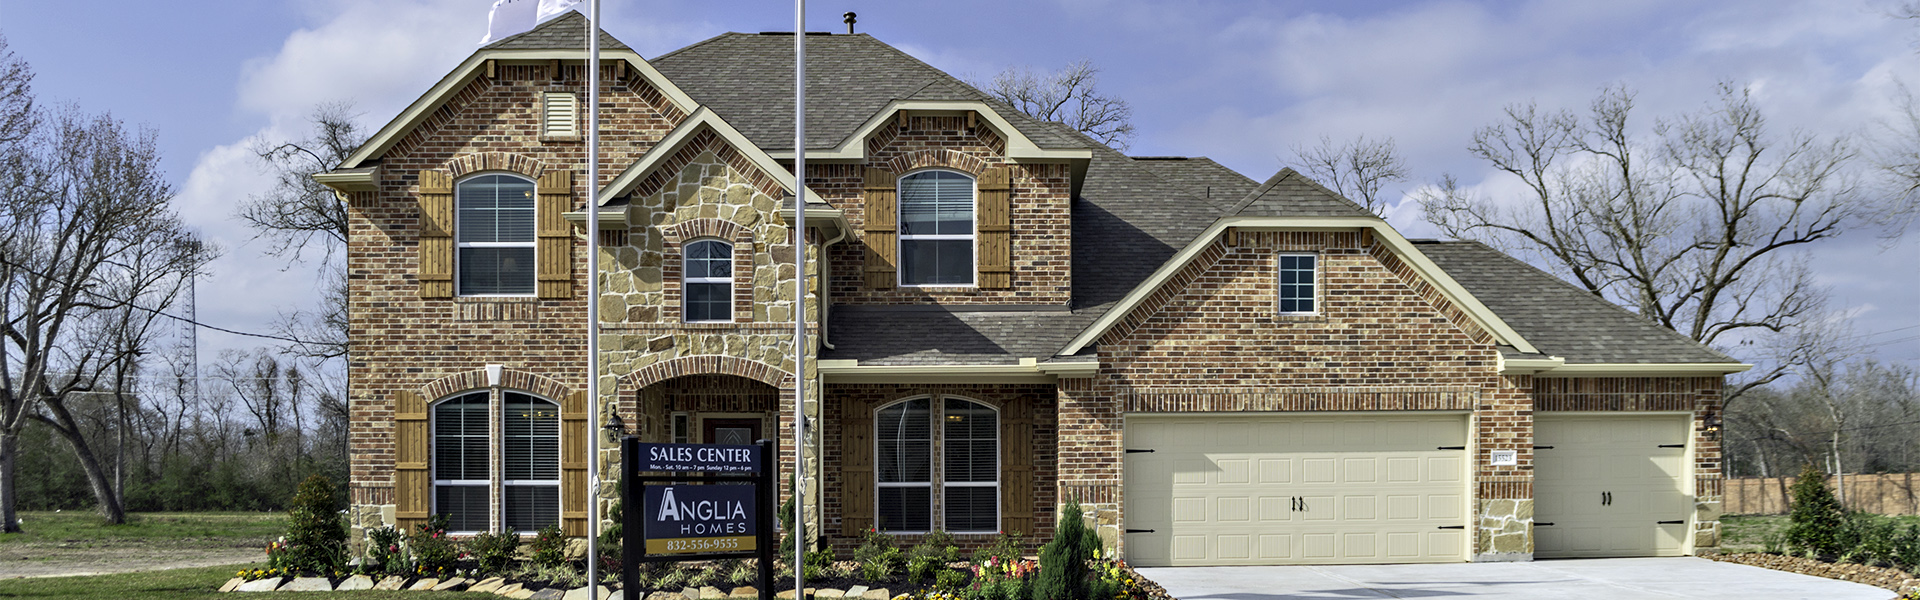 New Home Builders in Houston TX - Anglia Homes LP